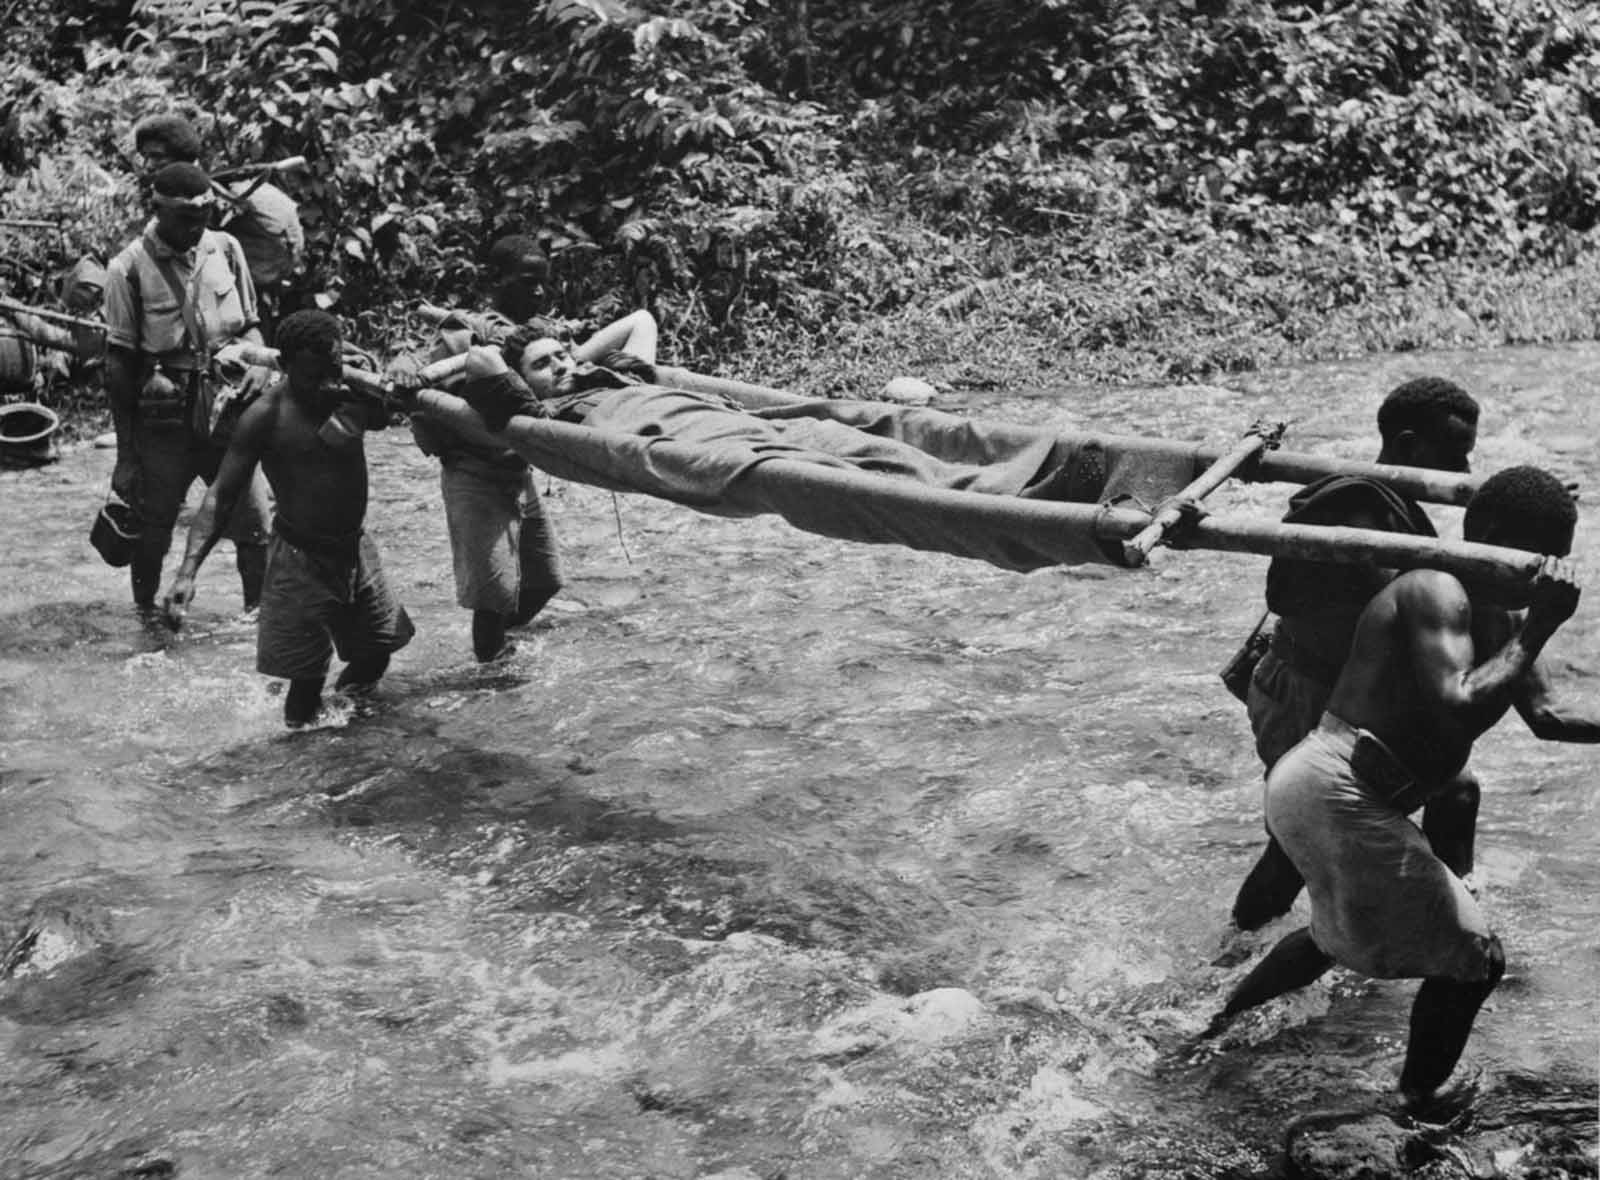 Stretcher bearers evacuate a wounded Australian soldier following a battle at Kokoda.